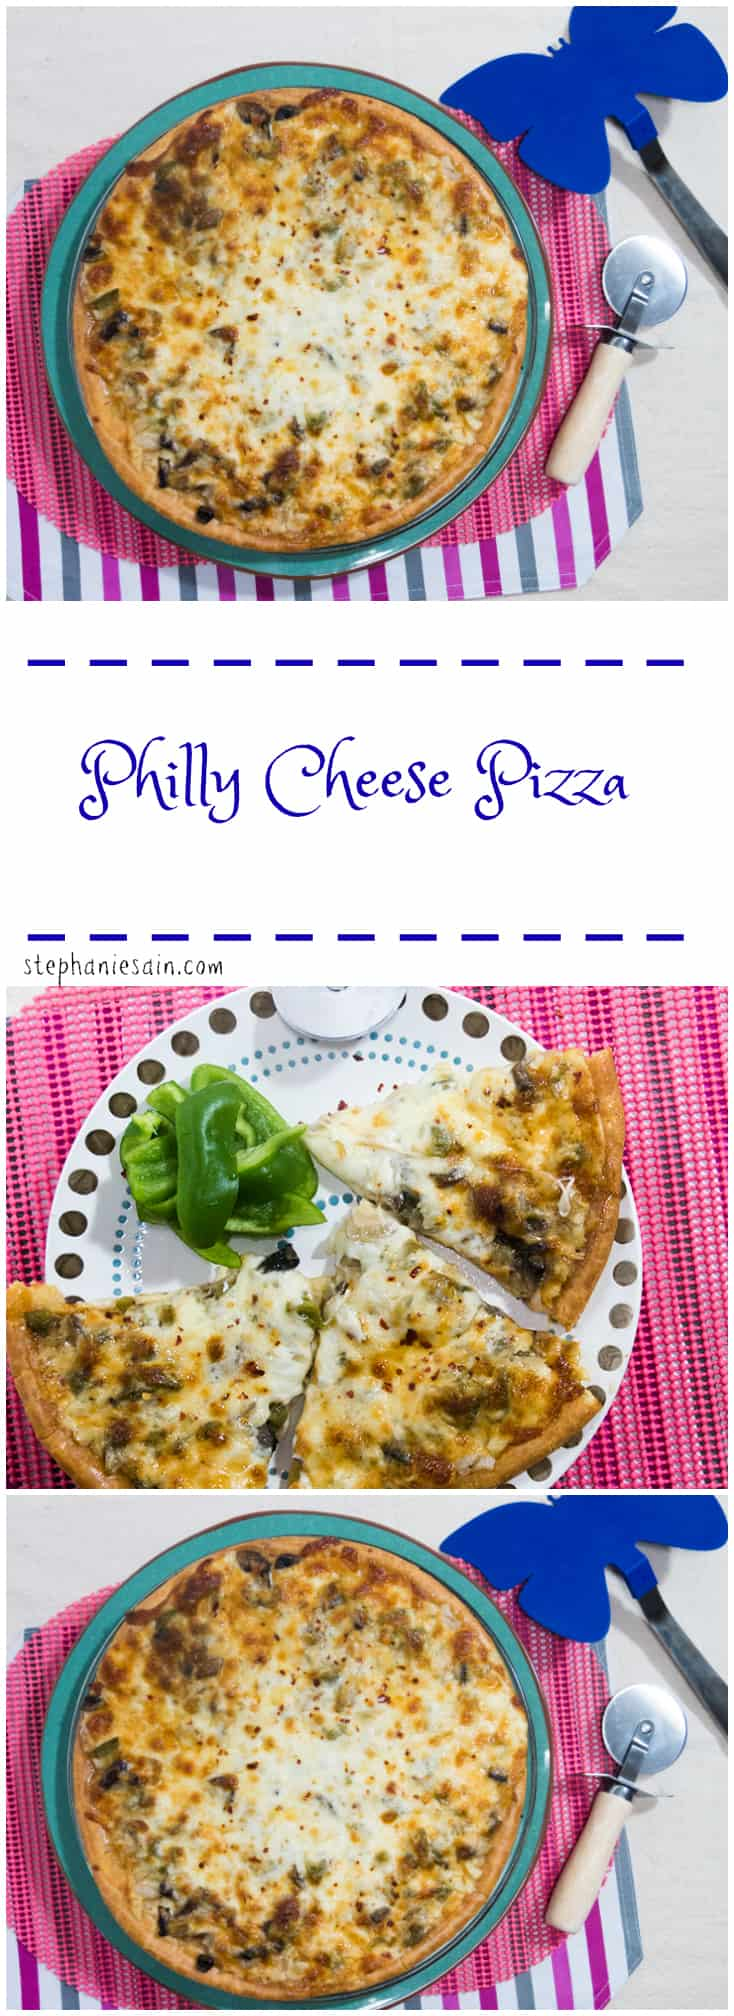 Philly Cheese Pizza is a tasty, easy to prepare pizza inspired by the flavors of a Philly sub. Vegetarian and Gluten Free.